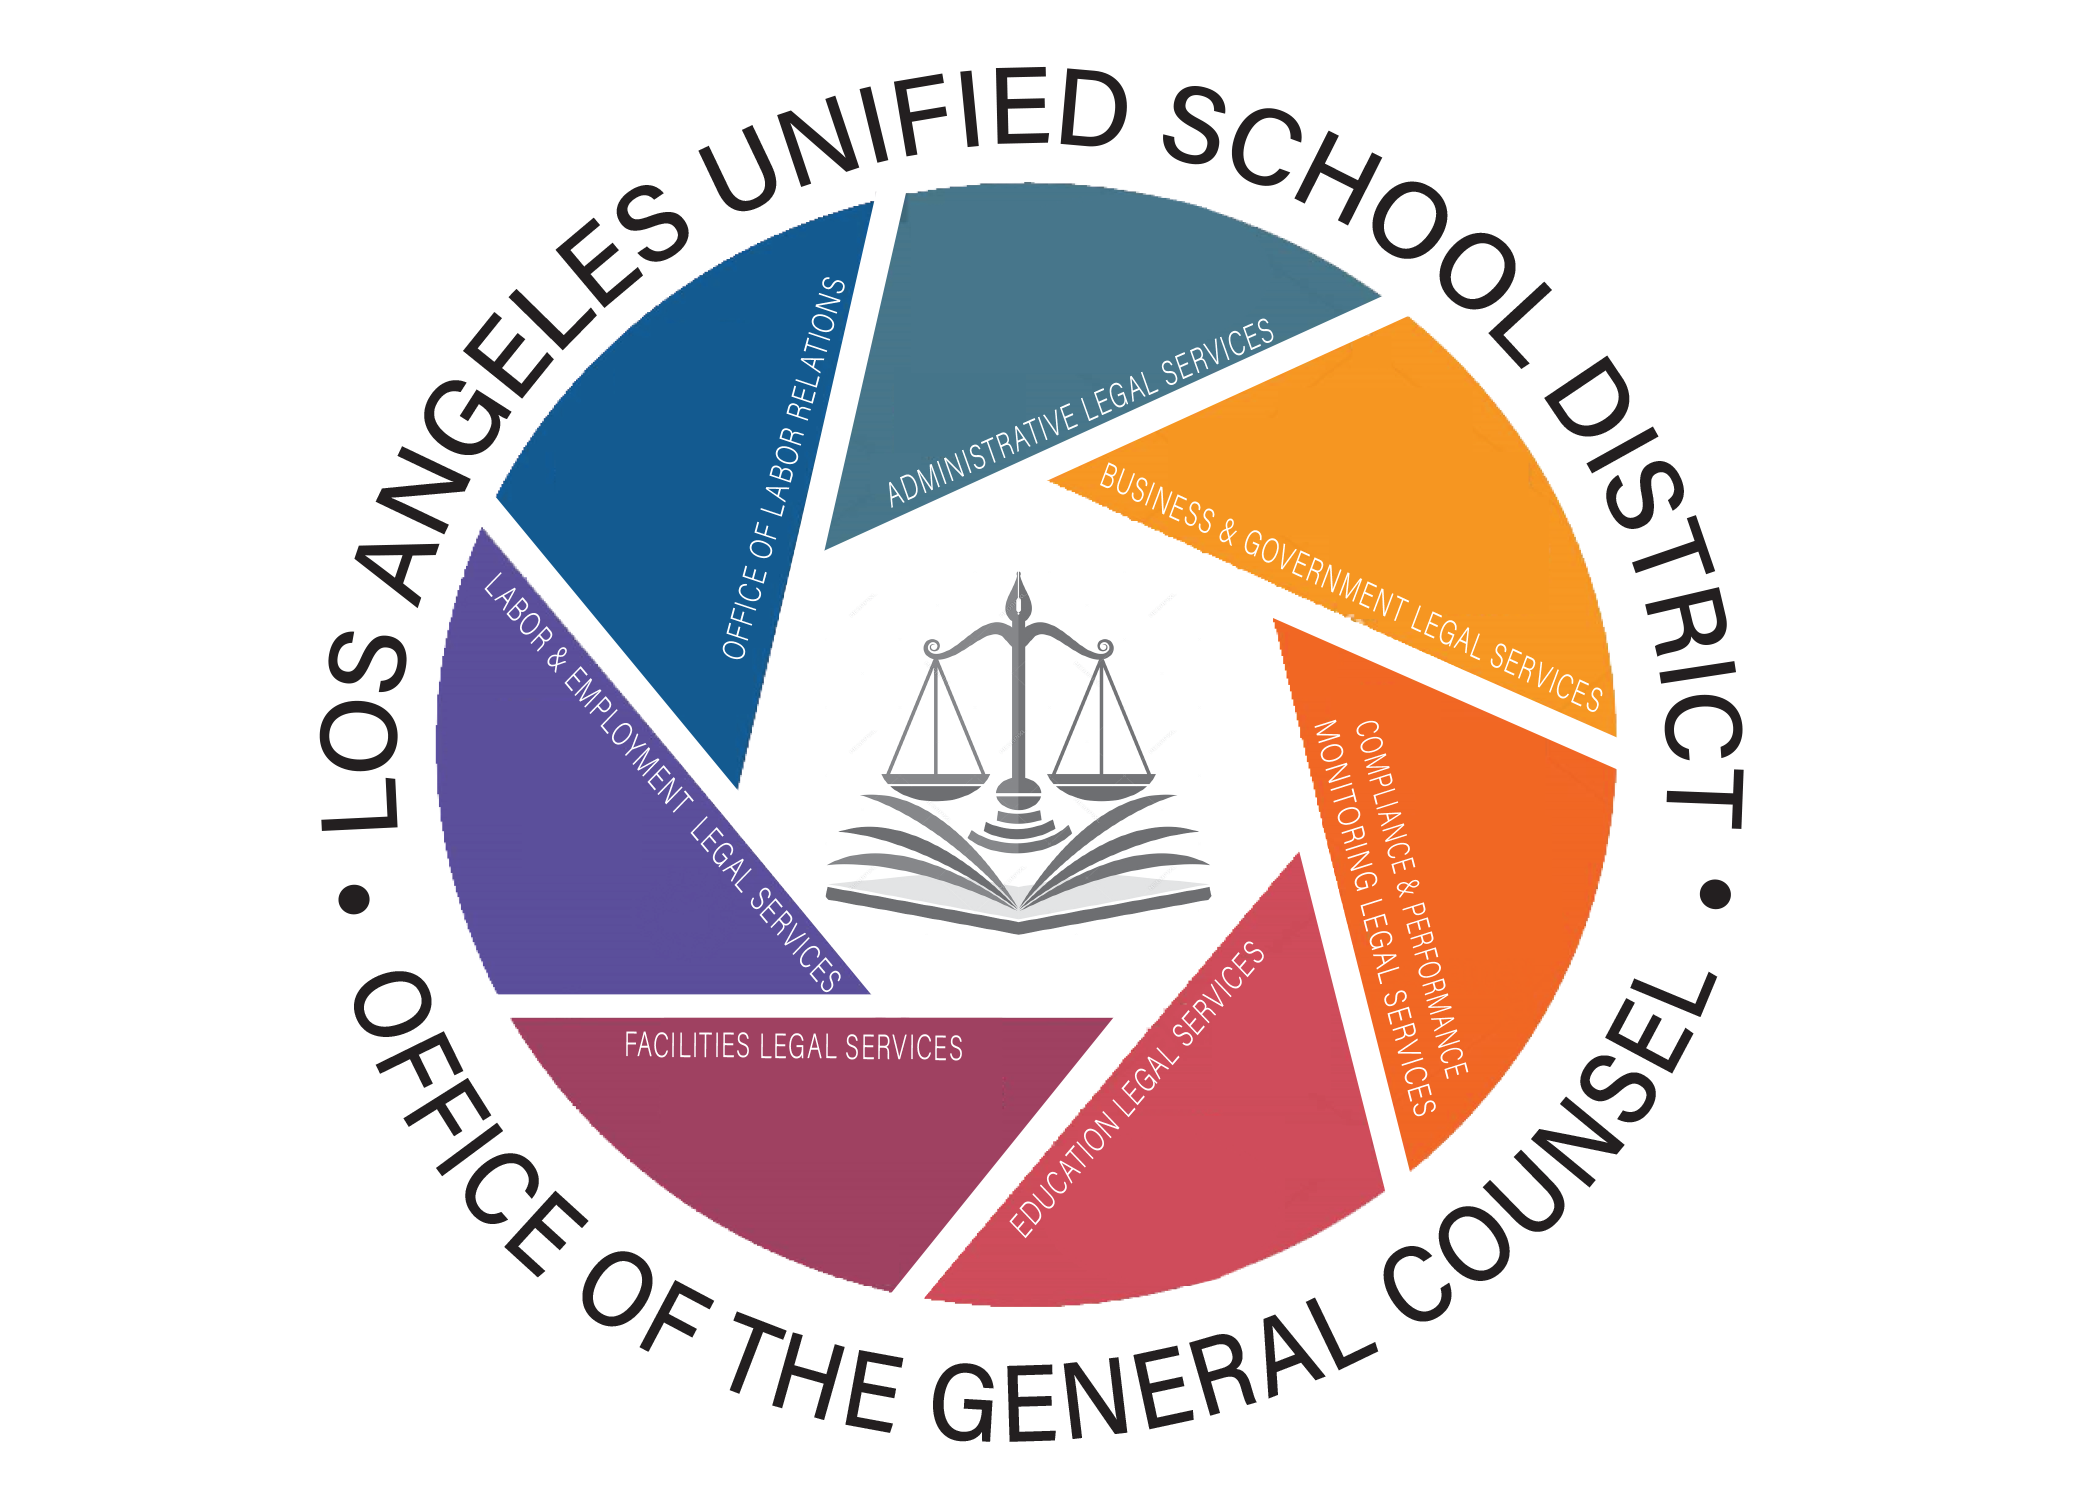 Los Angeles Unified School District, Office of the General Counsel